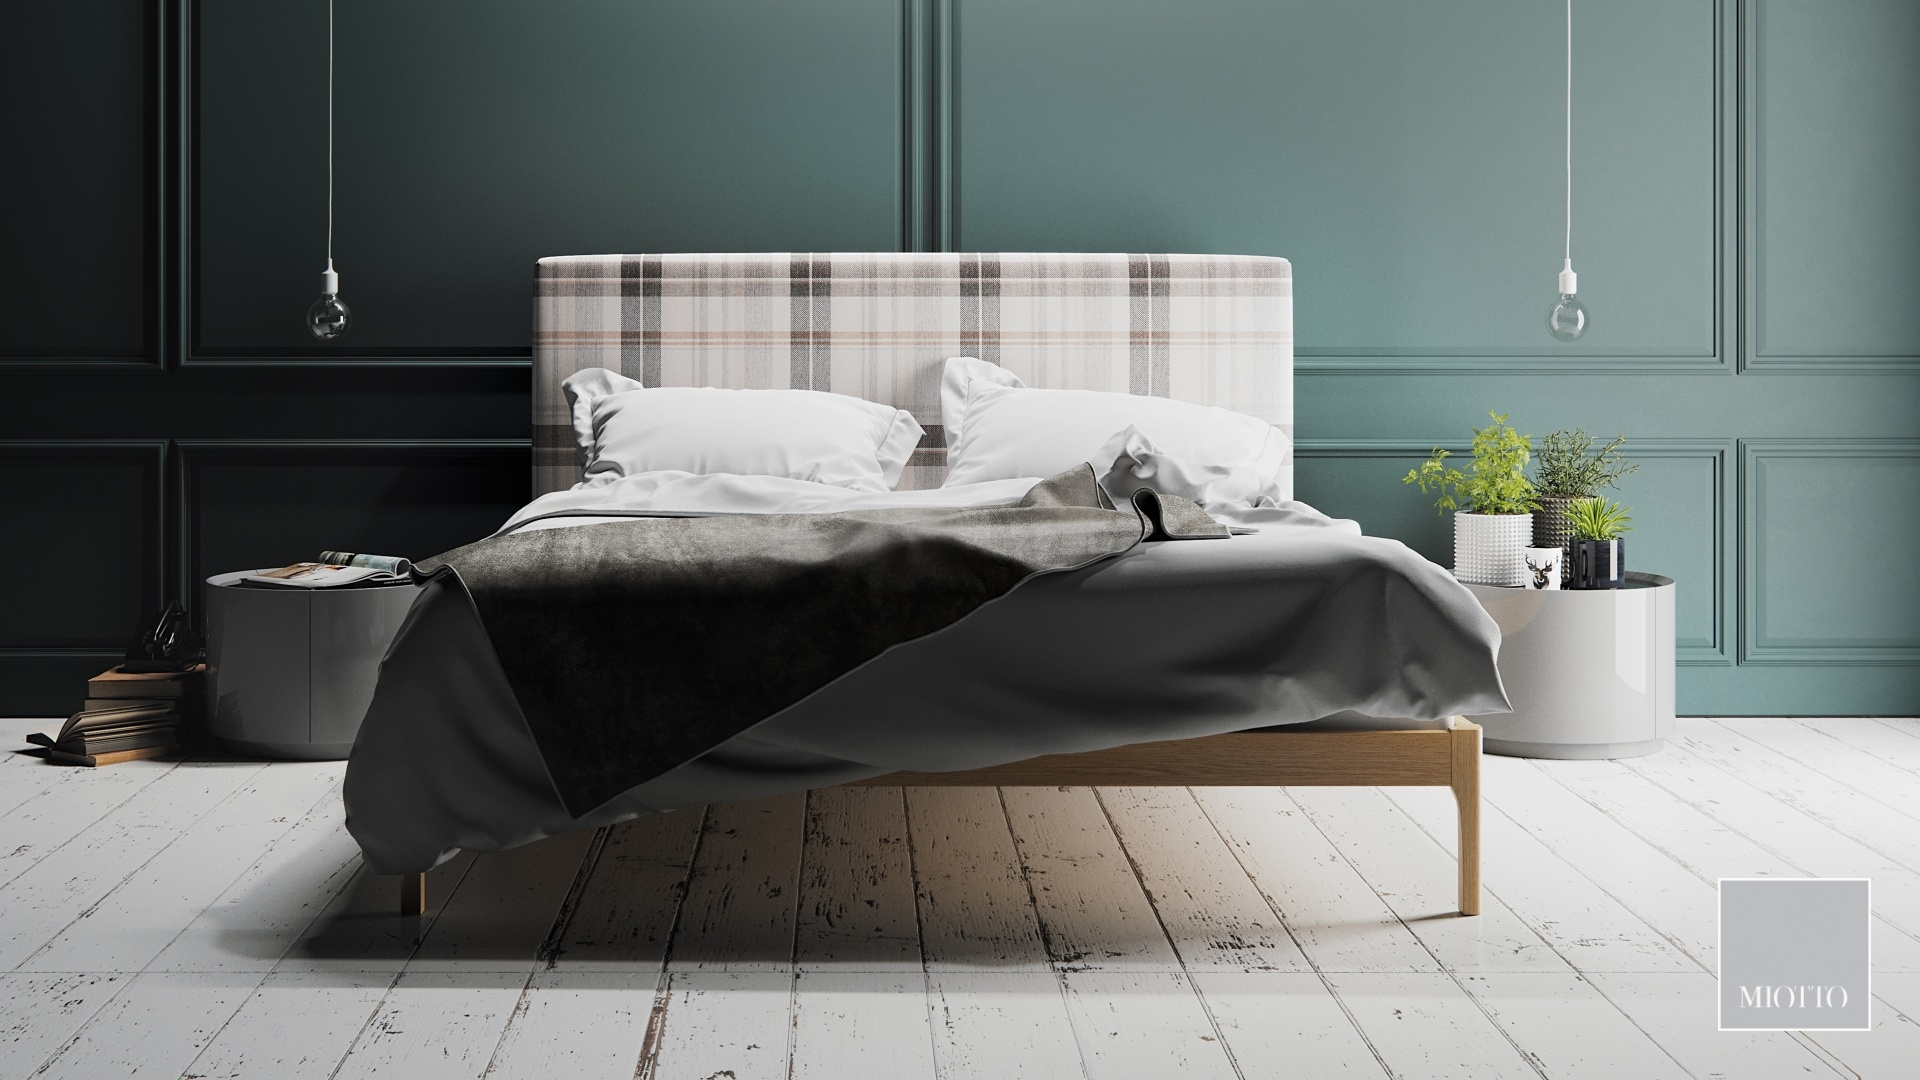 miotto_Panaro bed, soriano side front